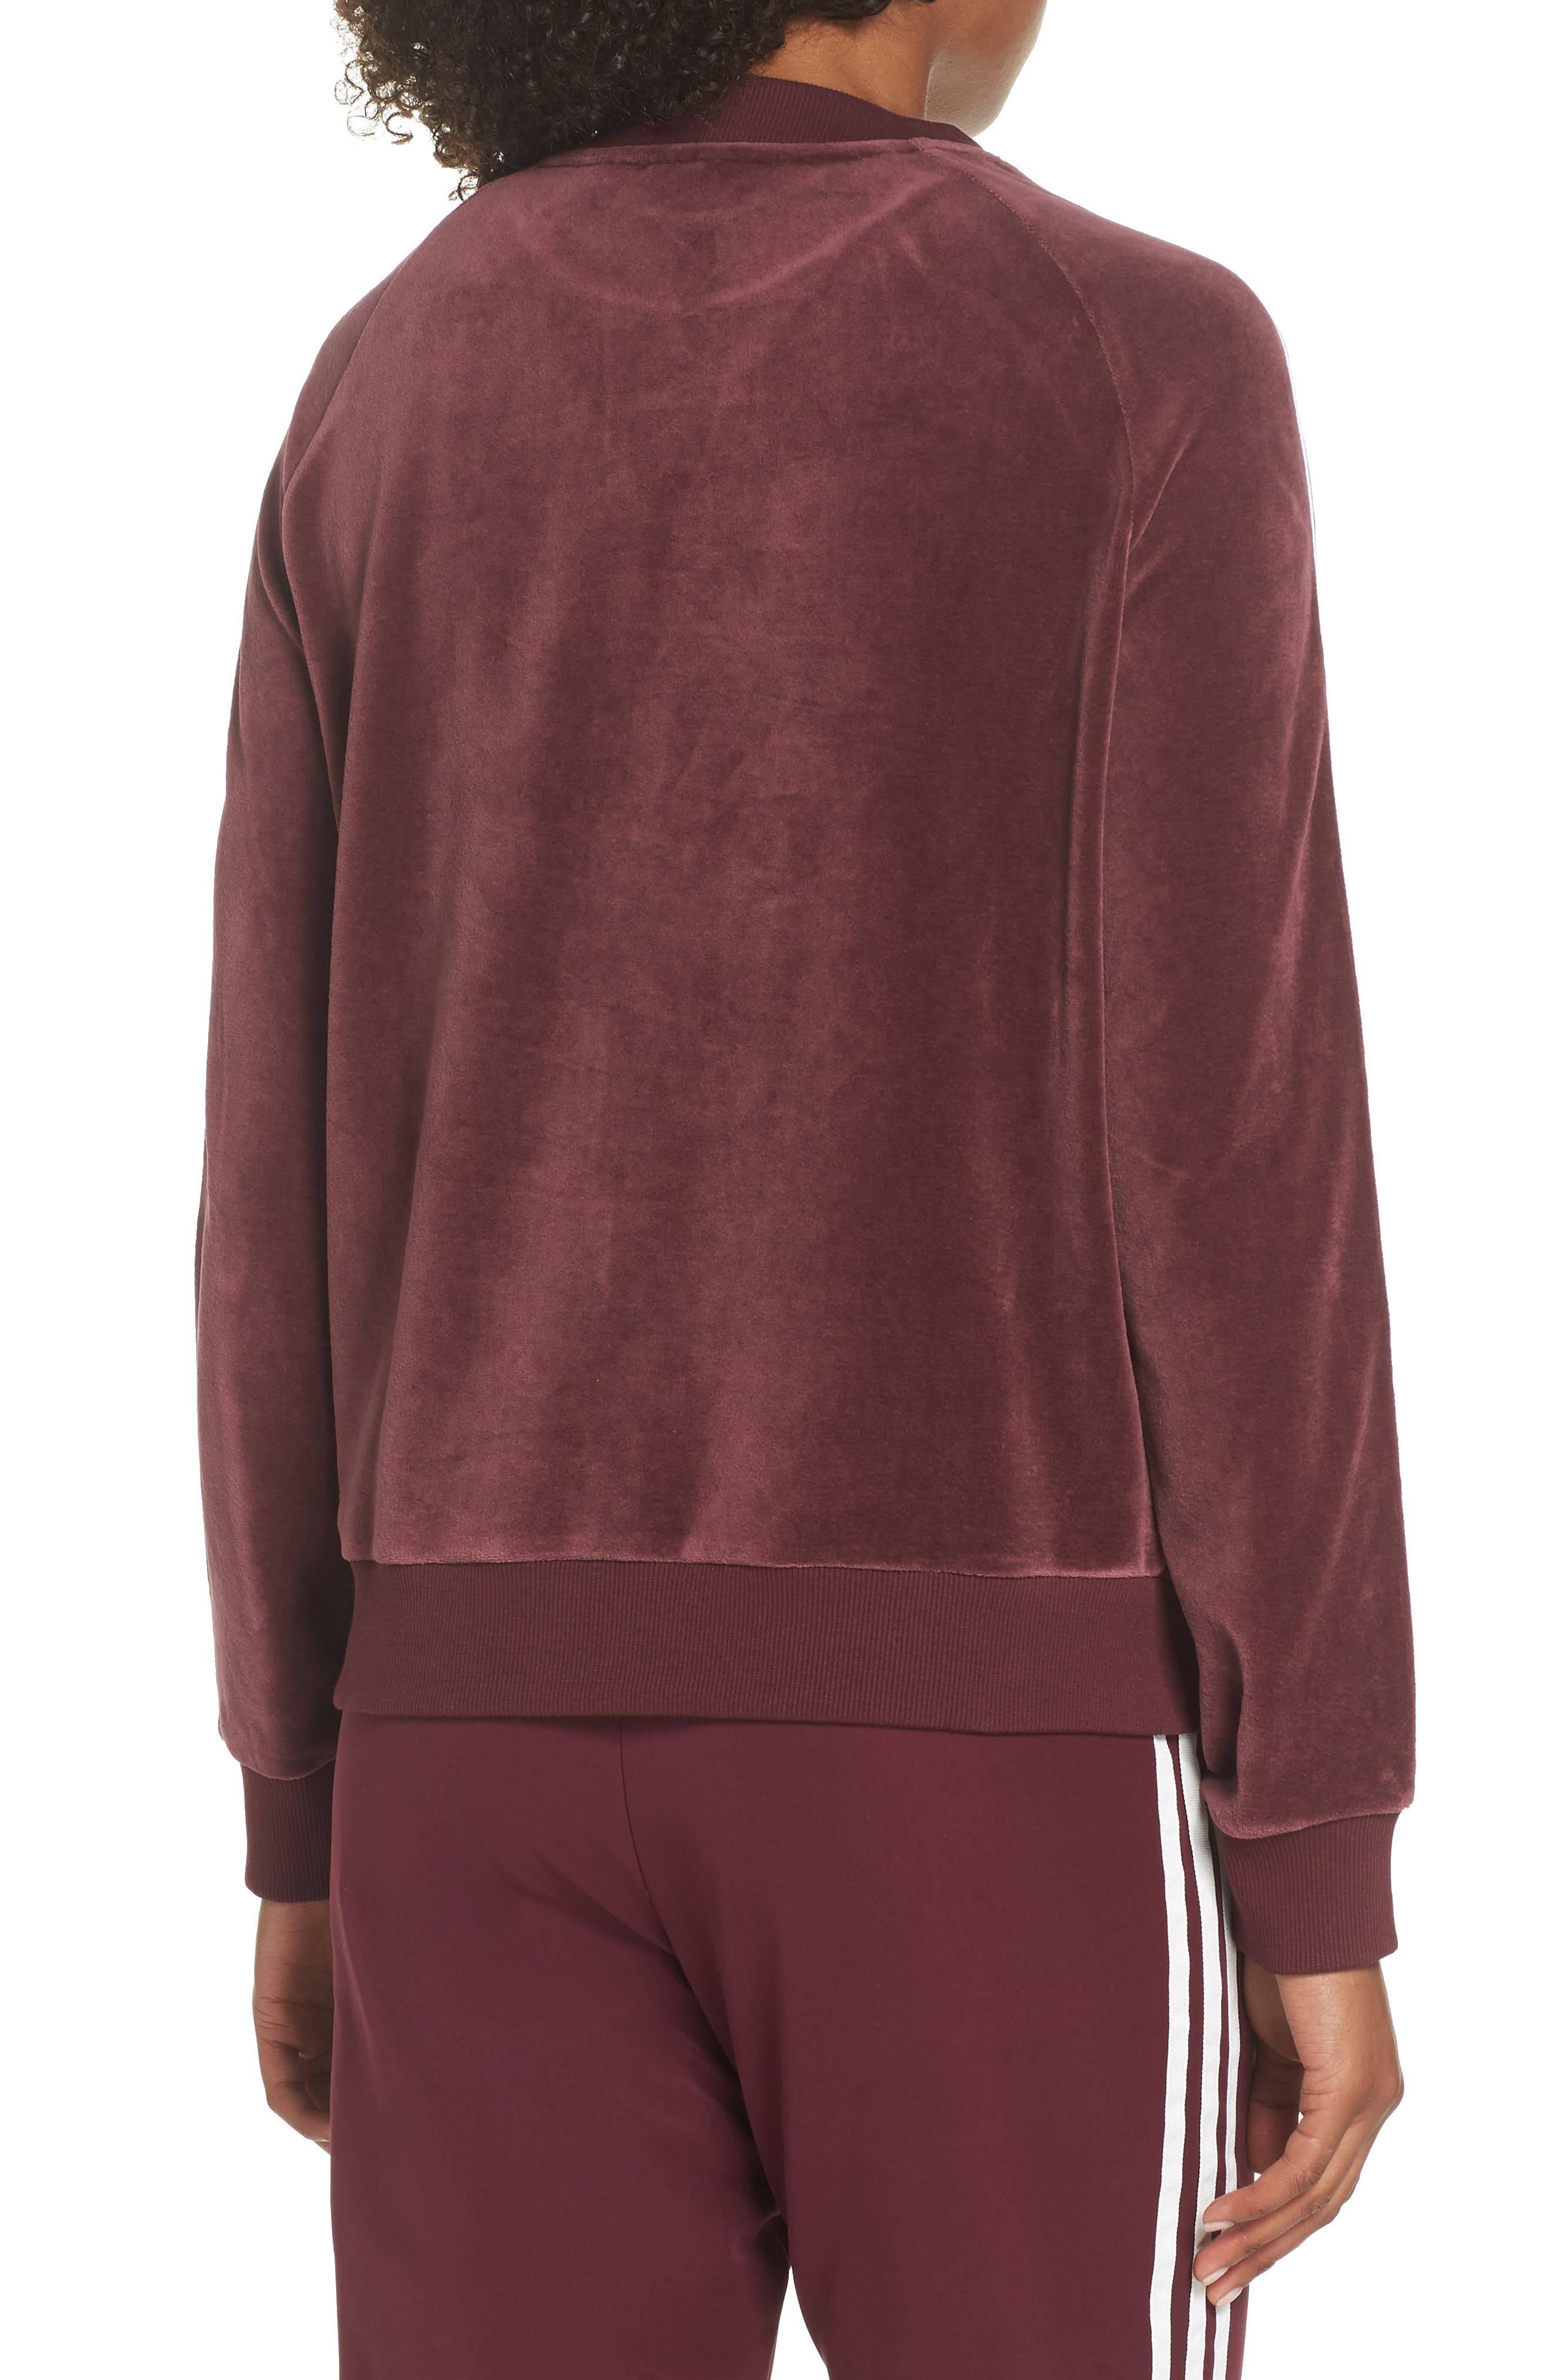 TRF Sweatshirt,                             Alternate thumbnail 2, color,                             MAROON